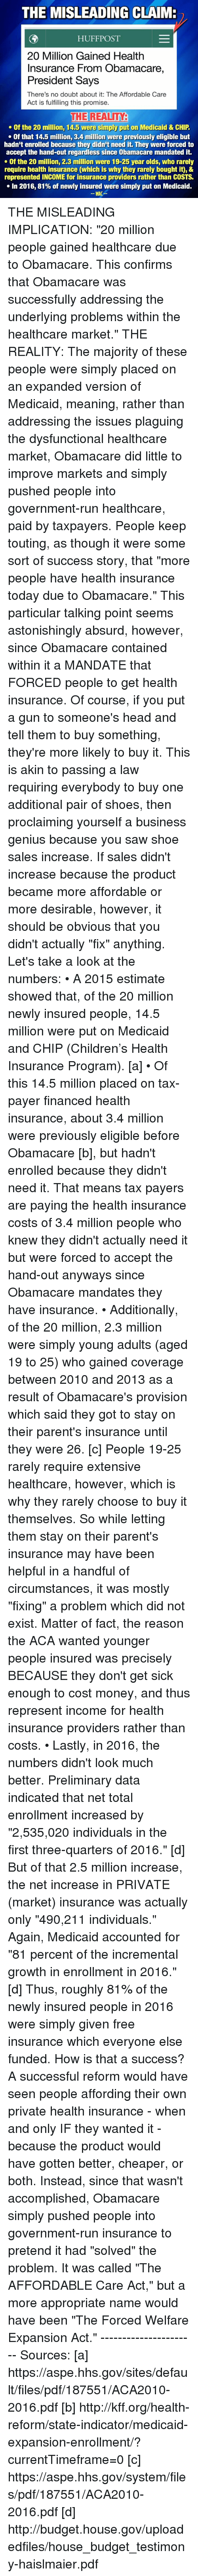 "Children, Head, and Memes: THE MISLEADING CLAIMR  HUFF POST  20 Million Gained Health  Insurance From Obamacare,  President Says  There's no doubt about it: The Affordable Care  Act is fulfilling this promise.  THE REALITY  Of the 20 million, 14.5 were simply put on Medicaid & CHIP  Of that 14.5 million, 3.4 million were previously eligible but  hadn't enrolled because they didn't need it. They were forced to  accept the hand-out regardless since Obamacare mandated it.  Of the 20 million, 2.3 million were 19-25 year olds, who rarely  require health insurance (which is why they rarely bought it), &  represented INCOME for insurance providers rather than COSTS.  In 2016, 81% of newly insured were simply put on Medicaid.  WAC THE MISLEADING IMPLICATION: ""20 million people gained healthcare due to Obamacare. This confirms that Obamacare was successfully addressing the underlying problems within the healthcare market.""  THE REALITY: The majority of these people were simply placed on an expanded version of Medicaid, meaning, rather than addressing the issues plaguing the dysfunctional healthcare market, Obamacare did little to improve markets and simply pushed people into government-run healthcare, paid by taxpayers.  People keep touting, as though it were some sort of success story, that ""more people have health insurance today due to Obamacare."" This particular talking point seems astonishingly absurd, however, since Obamacare contained within it a MANDATE that FORCED people to get health insurance. Of course, if you put a gun to someone's head and tell them to buy something, they're more likely to buy it. This is akin to passing a law requiring everybody to buy one additional pair of shoes, then proclaiming yourself a business genius because you saw shoe sales increase. If sales didn't increase because the product became more affordable or more desirable, however, it should be obvious that you didn't actually ""fix"" anything.   Let's take a look at the numbers:  • A 2015 estimate showed that, of the 20 million newly insured people, 14.5 million were put on Medicaid and CHIP (Children's Health Insurance Program). [a]  • Of this 14.5 million placed on tax-payer financed health insurance, about 3.4 million were previously eligible before Obamacare [b], but hadn't enrolled because they didn't need it. That means tax payers are paying the health insurance costs of 3.4 million people who knew they didn't actually need it but were forced to accept the hand-out anyways since Obamacare mandates they have insurance.   • Additionally, of the 20 million, 2.3 million were simply young adults (aged 19 to 25) who gained coverage between 2010 and 2013 as a result of Obamacare's provision which said they got to stay on their parent's insurance until they were 26. [c] People 19-25 rarely require extensive healthcare, however, which is why they rarely choose to buy it themselves. So while letting them stay on their parent's insurance may have been helpful in a handful of circumstances, it was mostly ""fixing"" a problem which did not exist. Matter of fact, the reason the ACA wanted younger people insured was precisely BECAUSE they don't get sick enough to cost money, and thus represent income for health insurance providers rather than costs.    • Lastly, in 2016, the numbers didn't look much better. Preliminary data indicated that net total enrollment increased by ""2,535,020 individuals in the first three-quarters of 2016."" [d] But of that 2.5 million increase, the net increase in PRIVATE (market) insurance was actually only ""490,211 individuals."" Again, Medicaid accounted for ""81 percent of the incremental growth in enrollment in 2016."" [d]  Thus, roughly 81% of the newly insured people in 2016 were simply given free insurance which everyone else funded. How is that a success? A successful reform would have seen people affording their own private health insurance - when and only IF they wanted it - because the product would have gotten better, cheaper, or both. Instead, since that wasn't accomplished, Obamacare simply pushed people into government-run insurance to pretend it had ""solved"" the problem. It was called ""The AFFORDABLE Care Act,"" but a more appropriate name would have been ""The Forced Welfare Expansion Act."" ---------------------- Sources: [a] https://aspe.hhs.gov/sites/default/files/pdf/187551/ACA2010-2016.pdf  [b] http://kff.org/health-reform/state-indicator/medicaid-expansion-enrollment/?currentTimeframe=0  [c] https://aspe.hhs.gov/system/files/pdf/187551/ACA2010-2016.pdf  [d] http://budget.house.gov/uploadedfiles/house_budget_testimony-haislmaier.pdf"